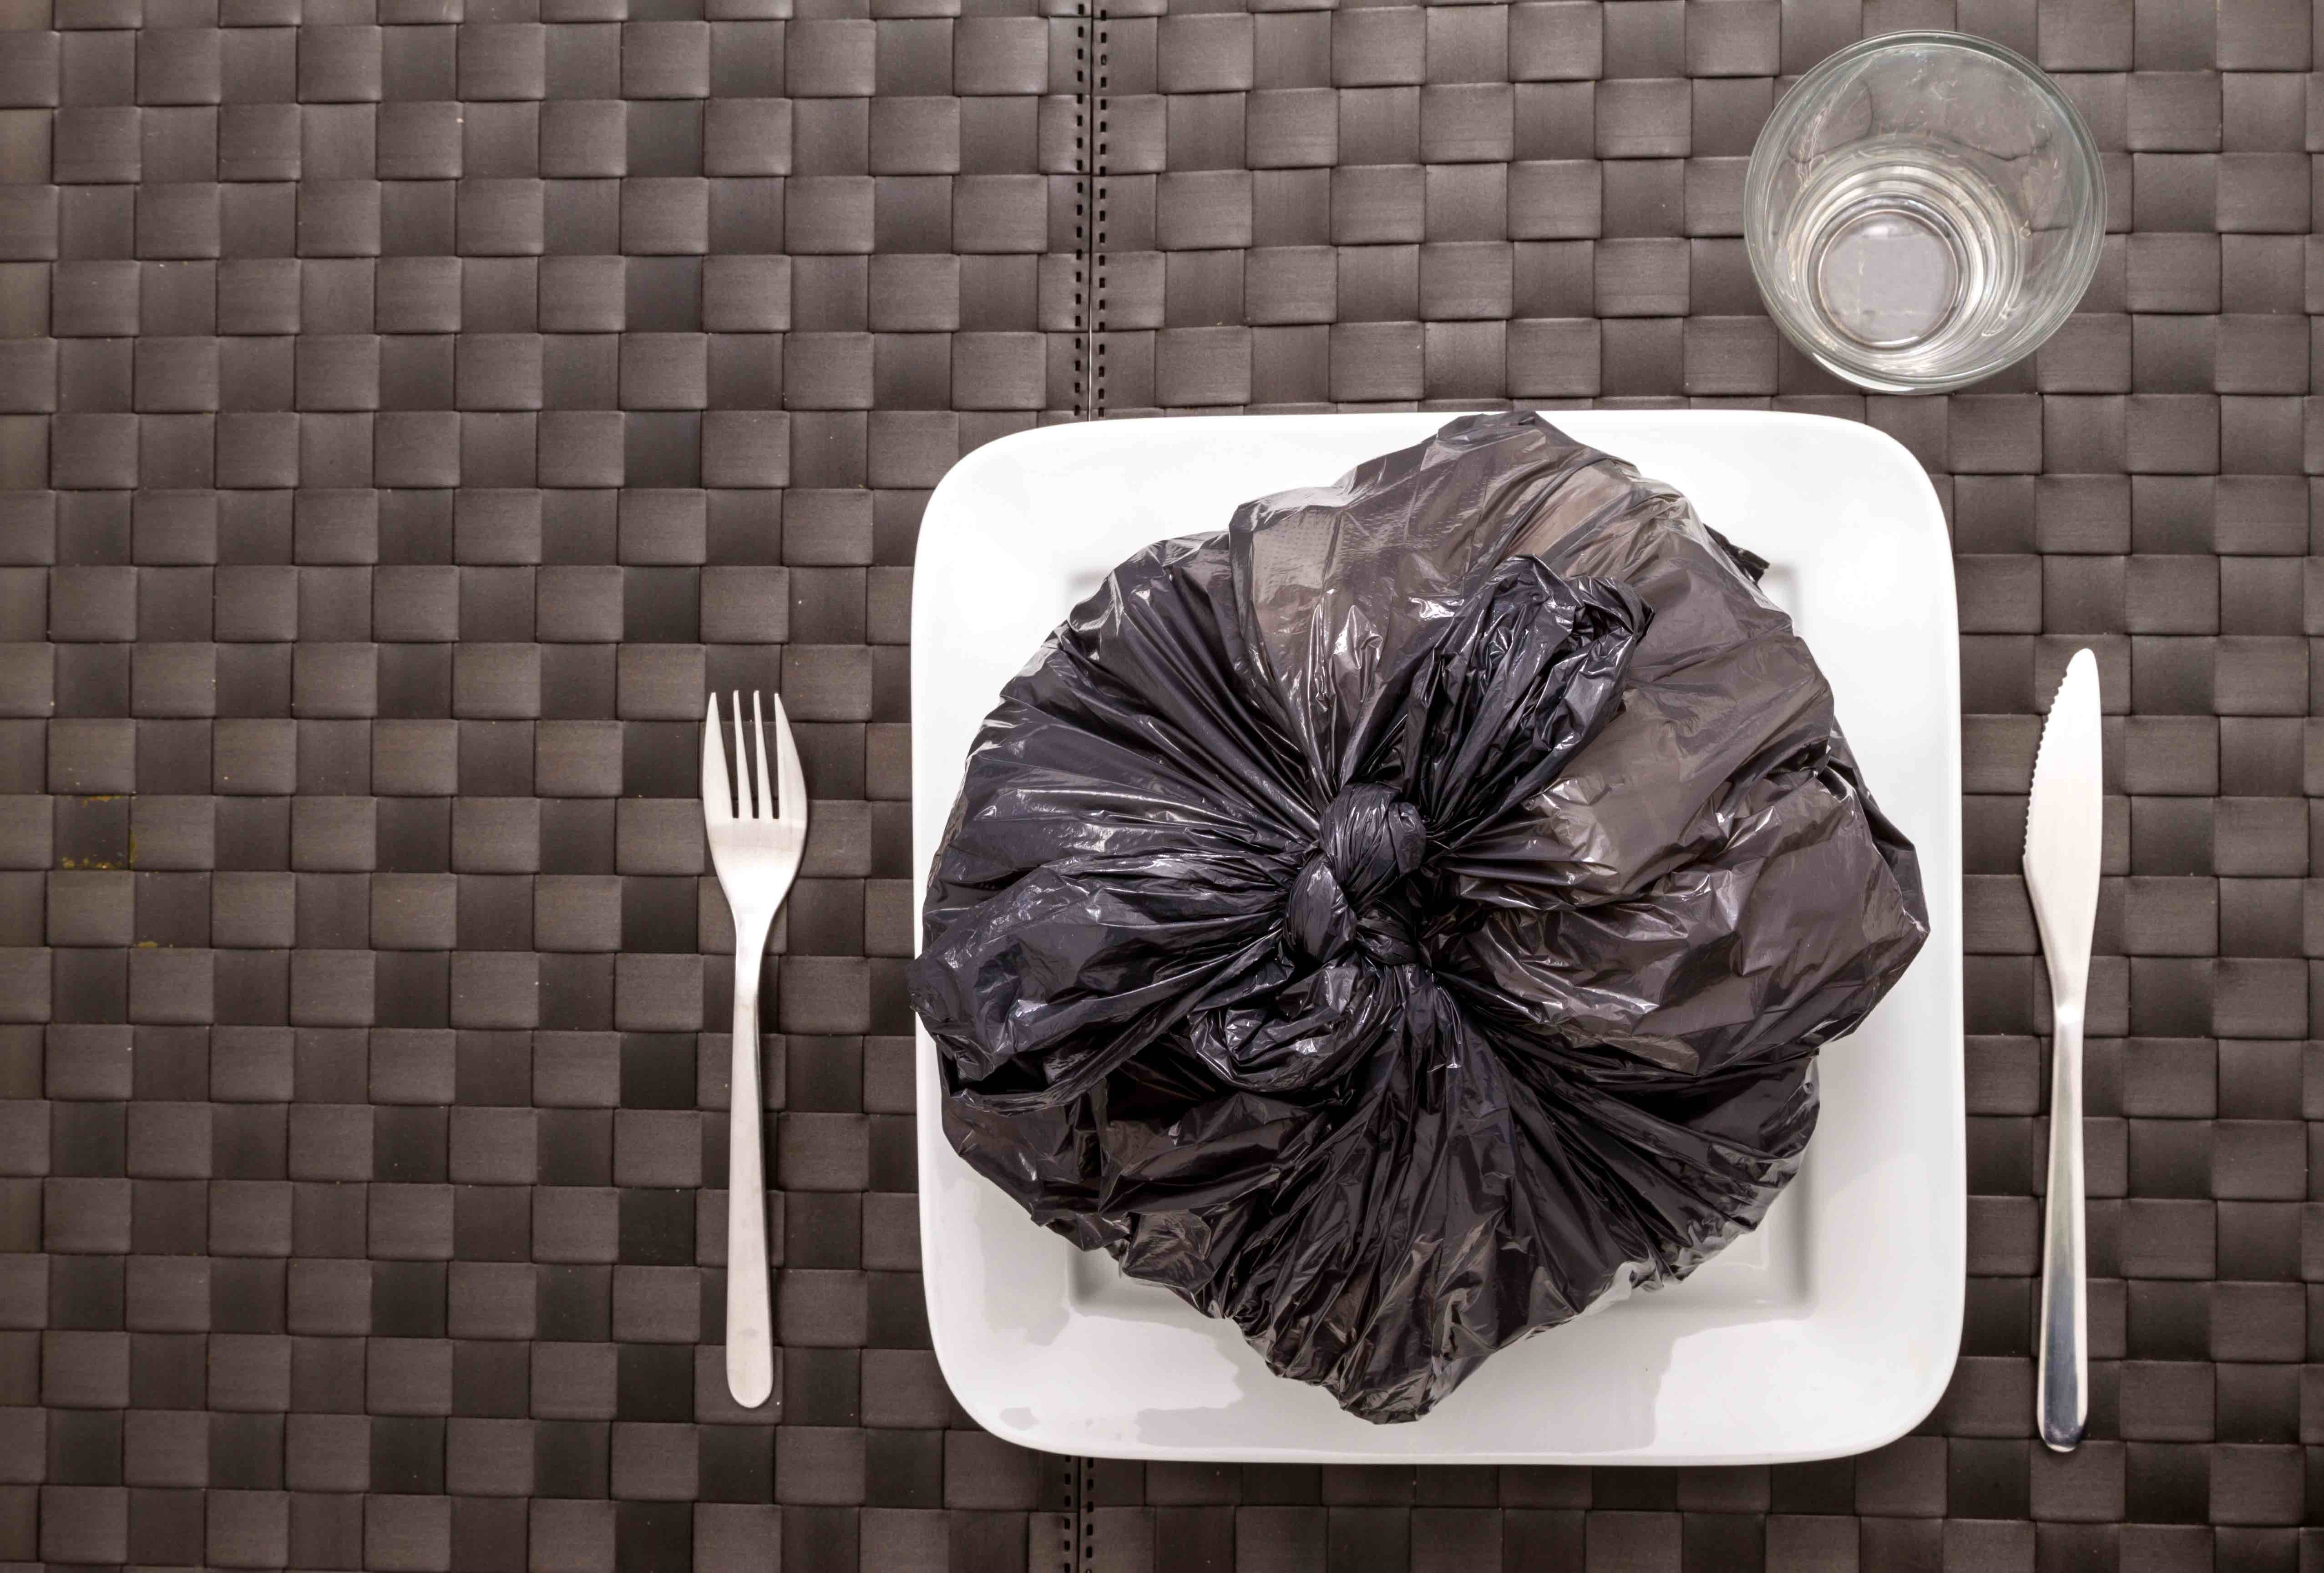 Edible foods trashed by UK families total to the billions. New figures released today by the waste and recycling advisory body Wrap claim UK households threw away £13 billion worth of edible food in 2015.